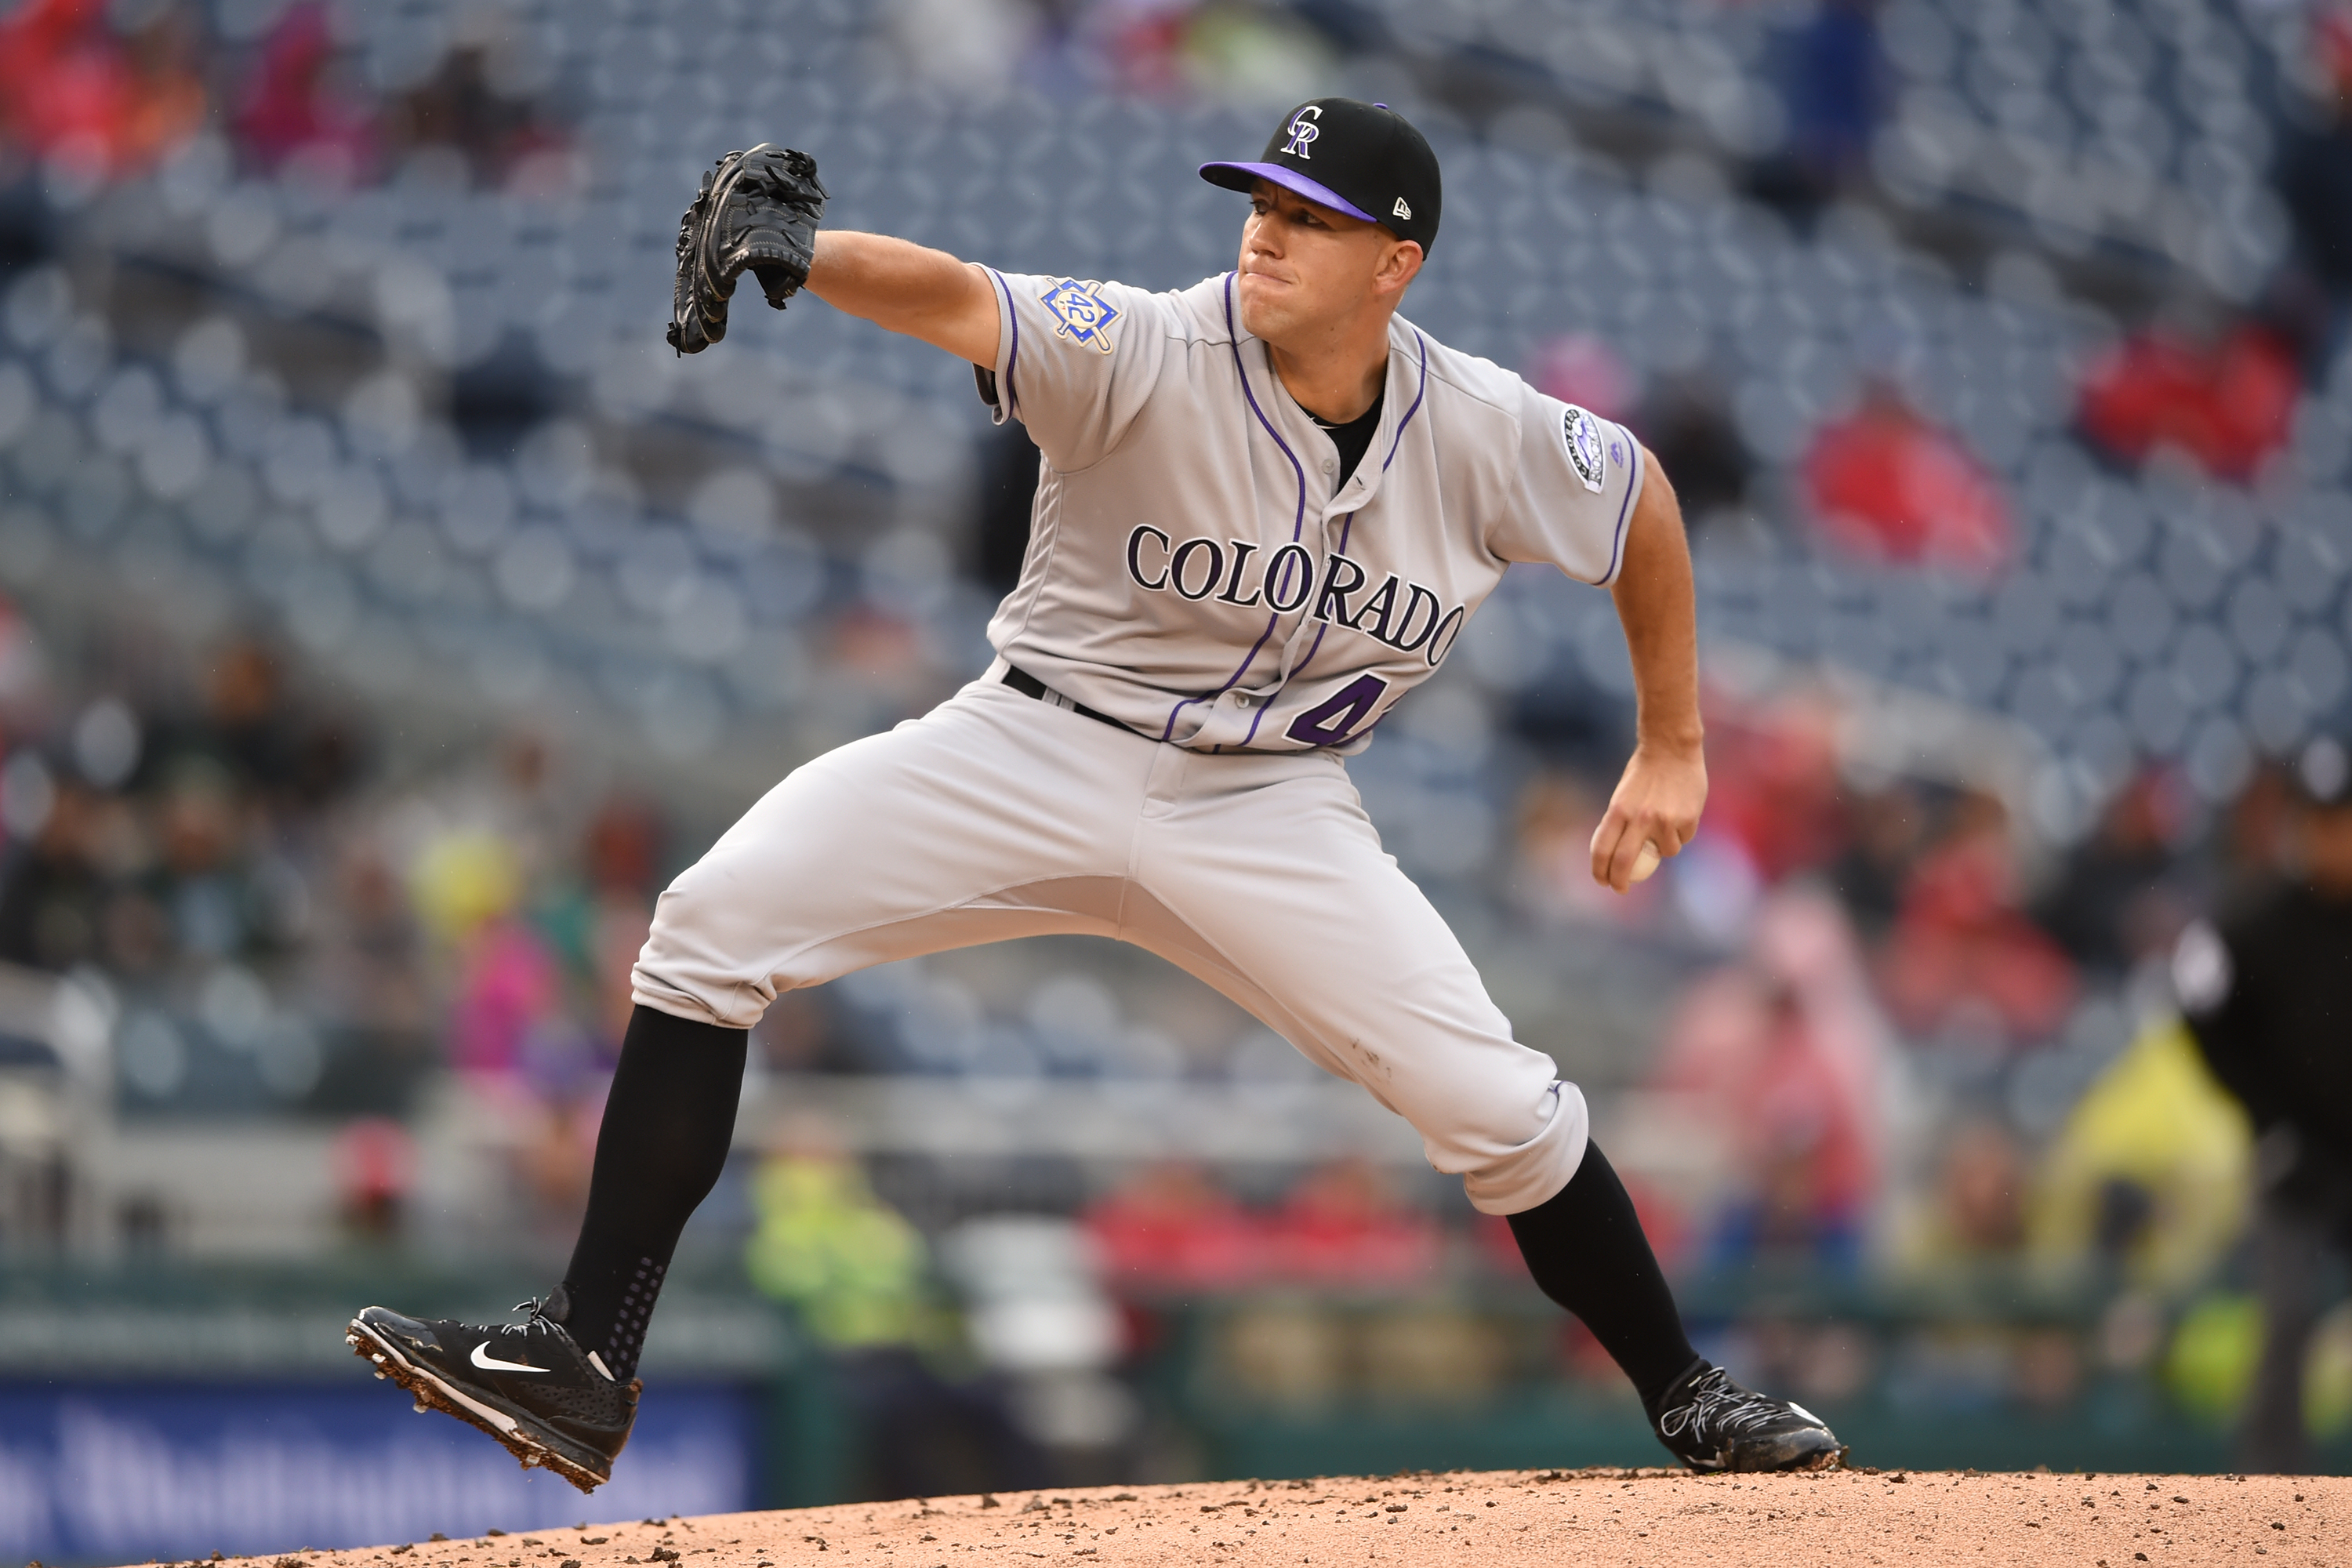 Chicago Cubs vs. Colorado Rockies, 4-22-2018 - Expert Prediction